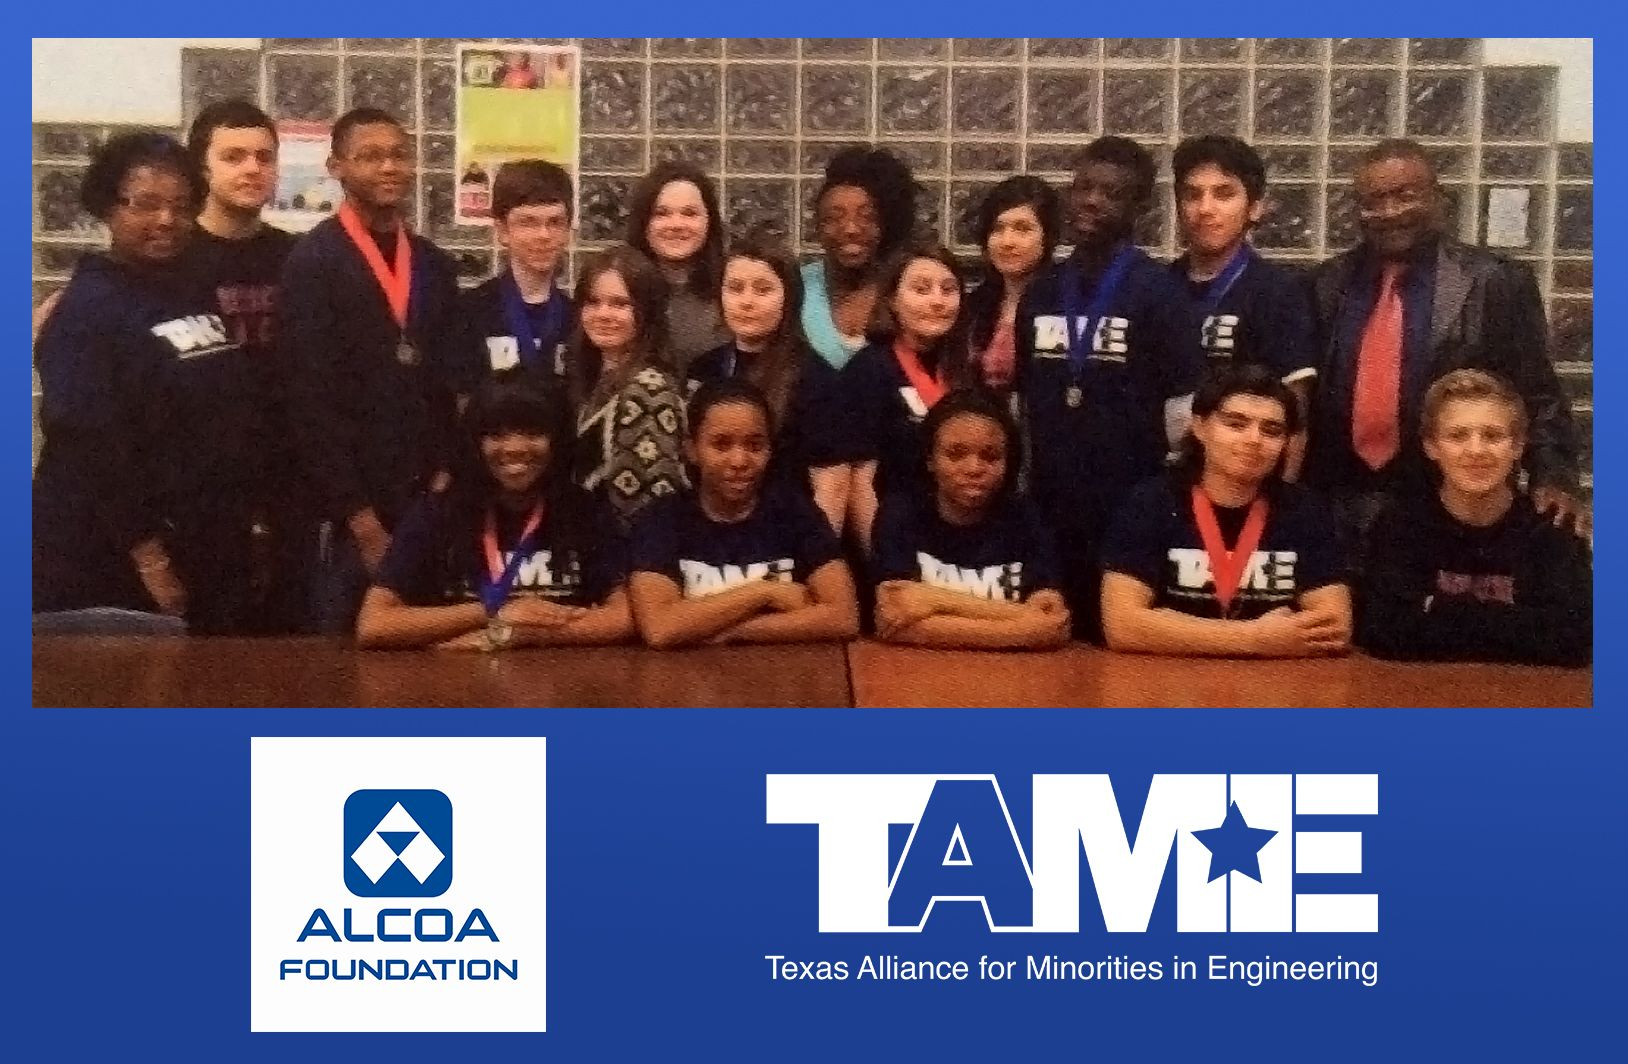 Alcoa Awards $15,000 to empower Wichita Falls students to pursue careers in science, technology, engineering and math!